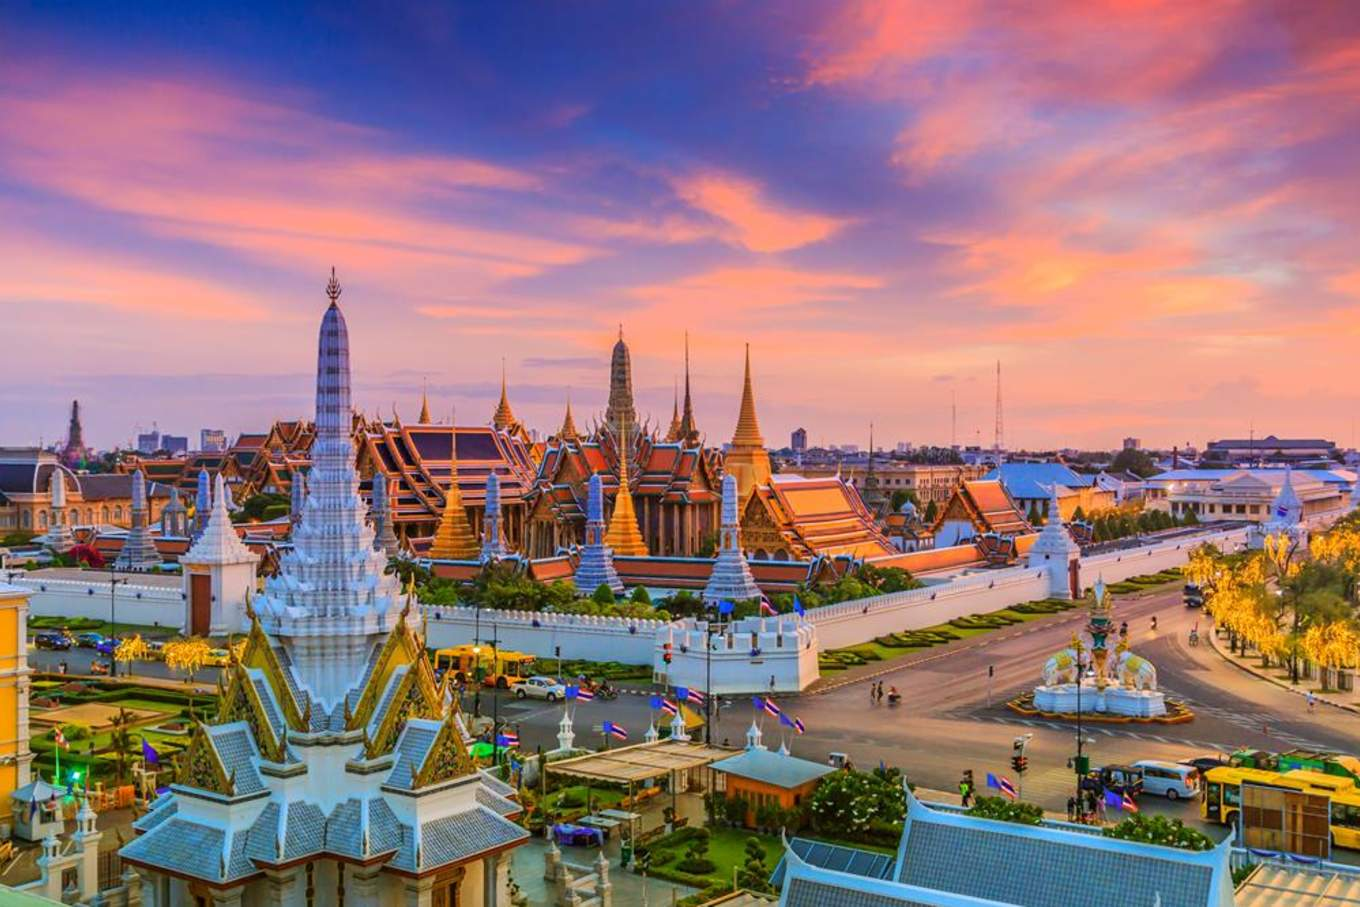 泰國著名的地標 玉佛寺Landmark of Bangkok city Temple of the Emerald Buddha Bangkok@HC購買354574304